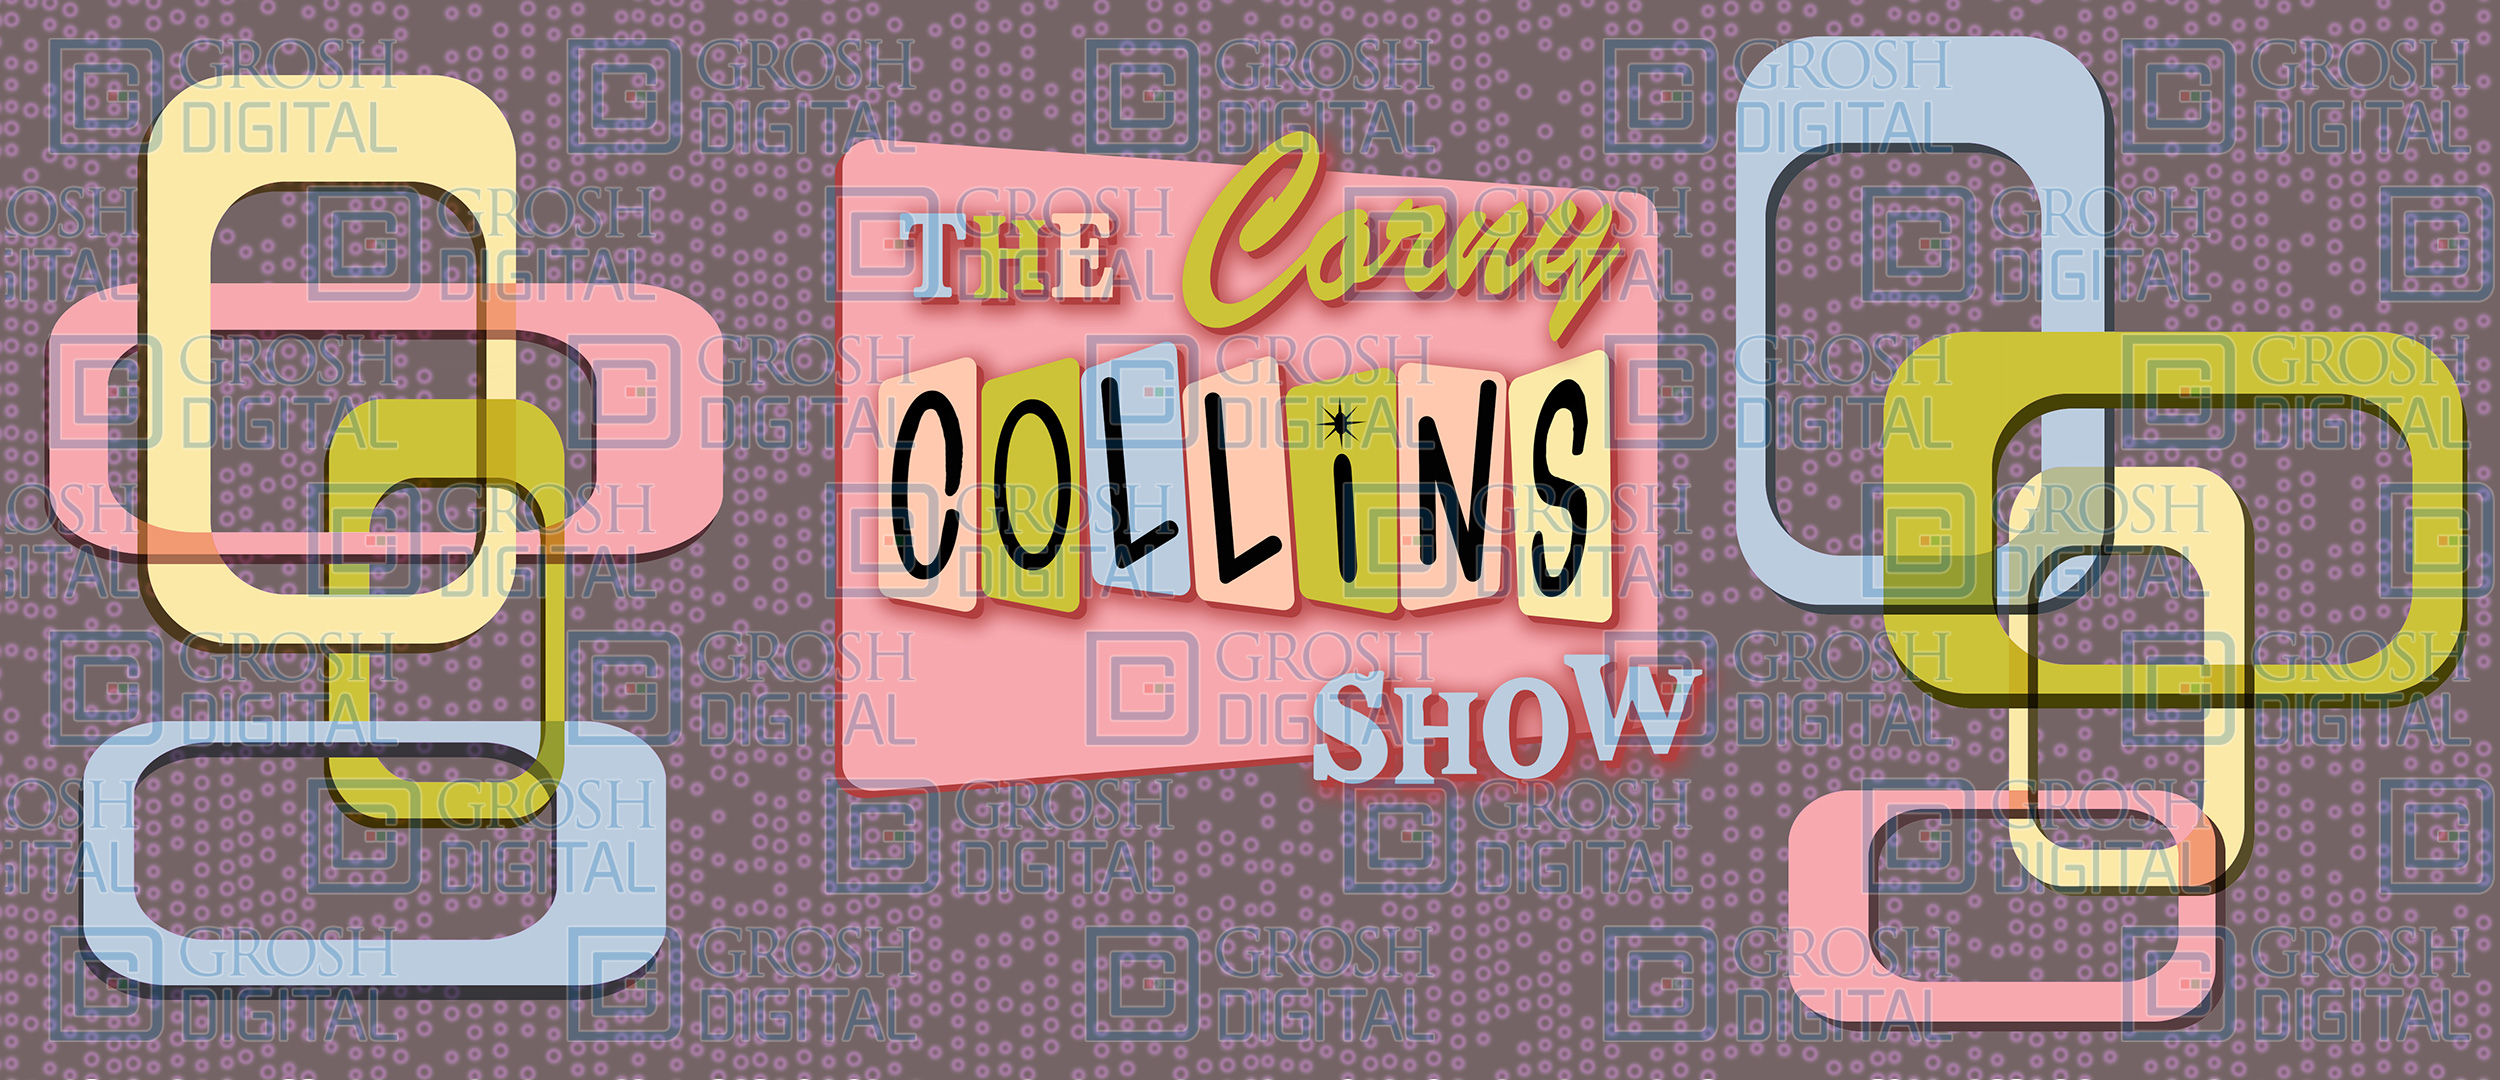 Corny Collins Show Projected Backdrop for Hairspray